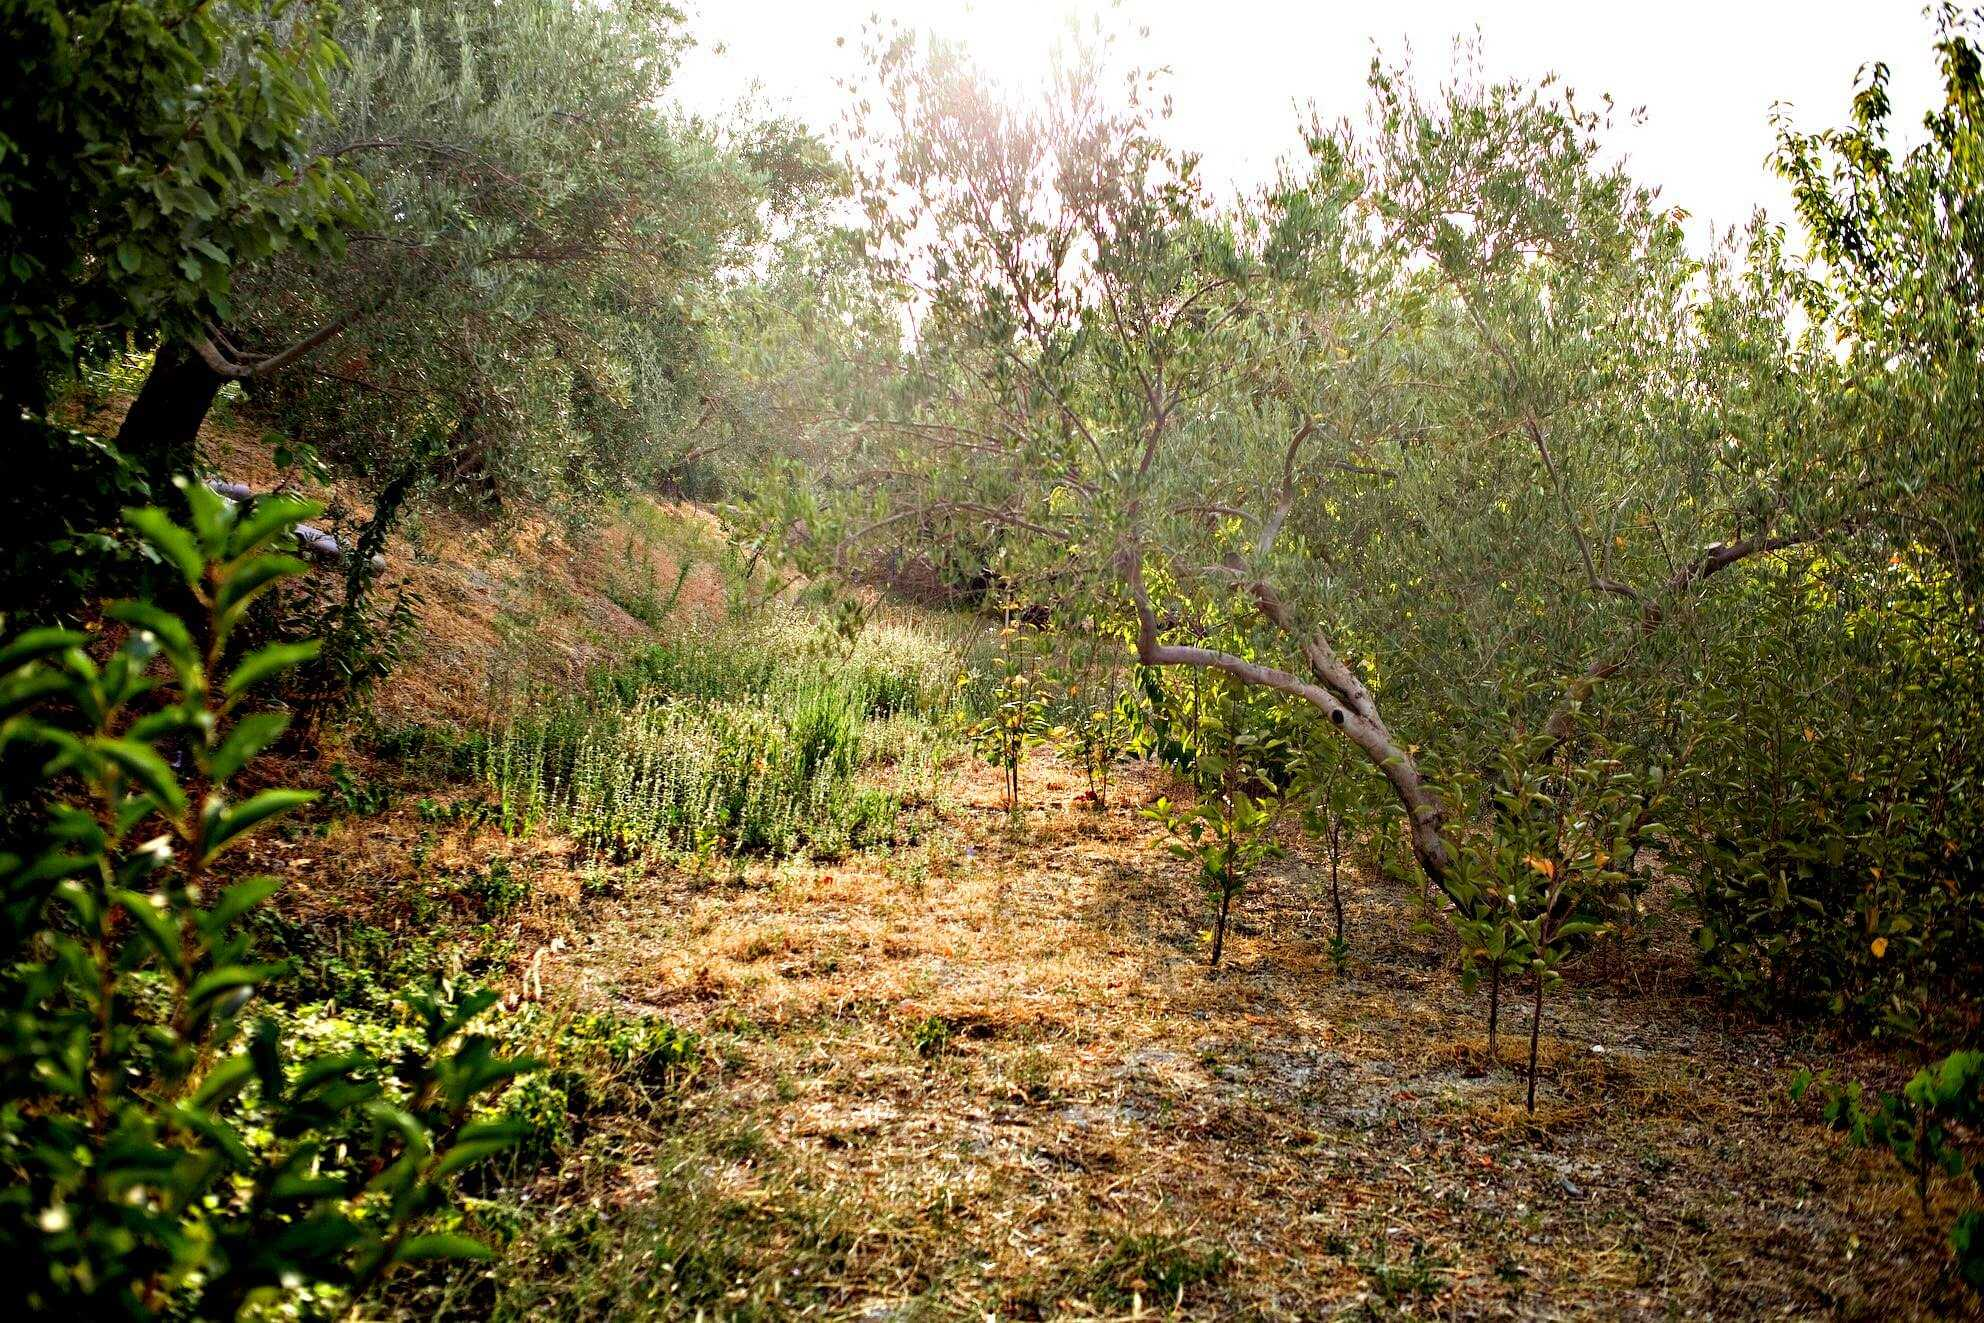 study-in-spain-confirms-olive-tree-as-strategic-crop-to-recover-biodiversity